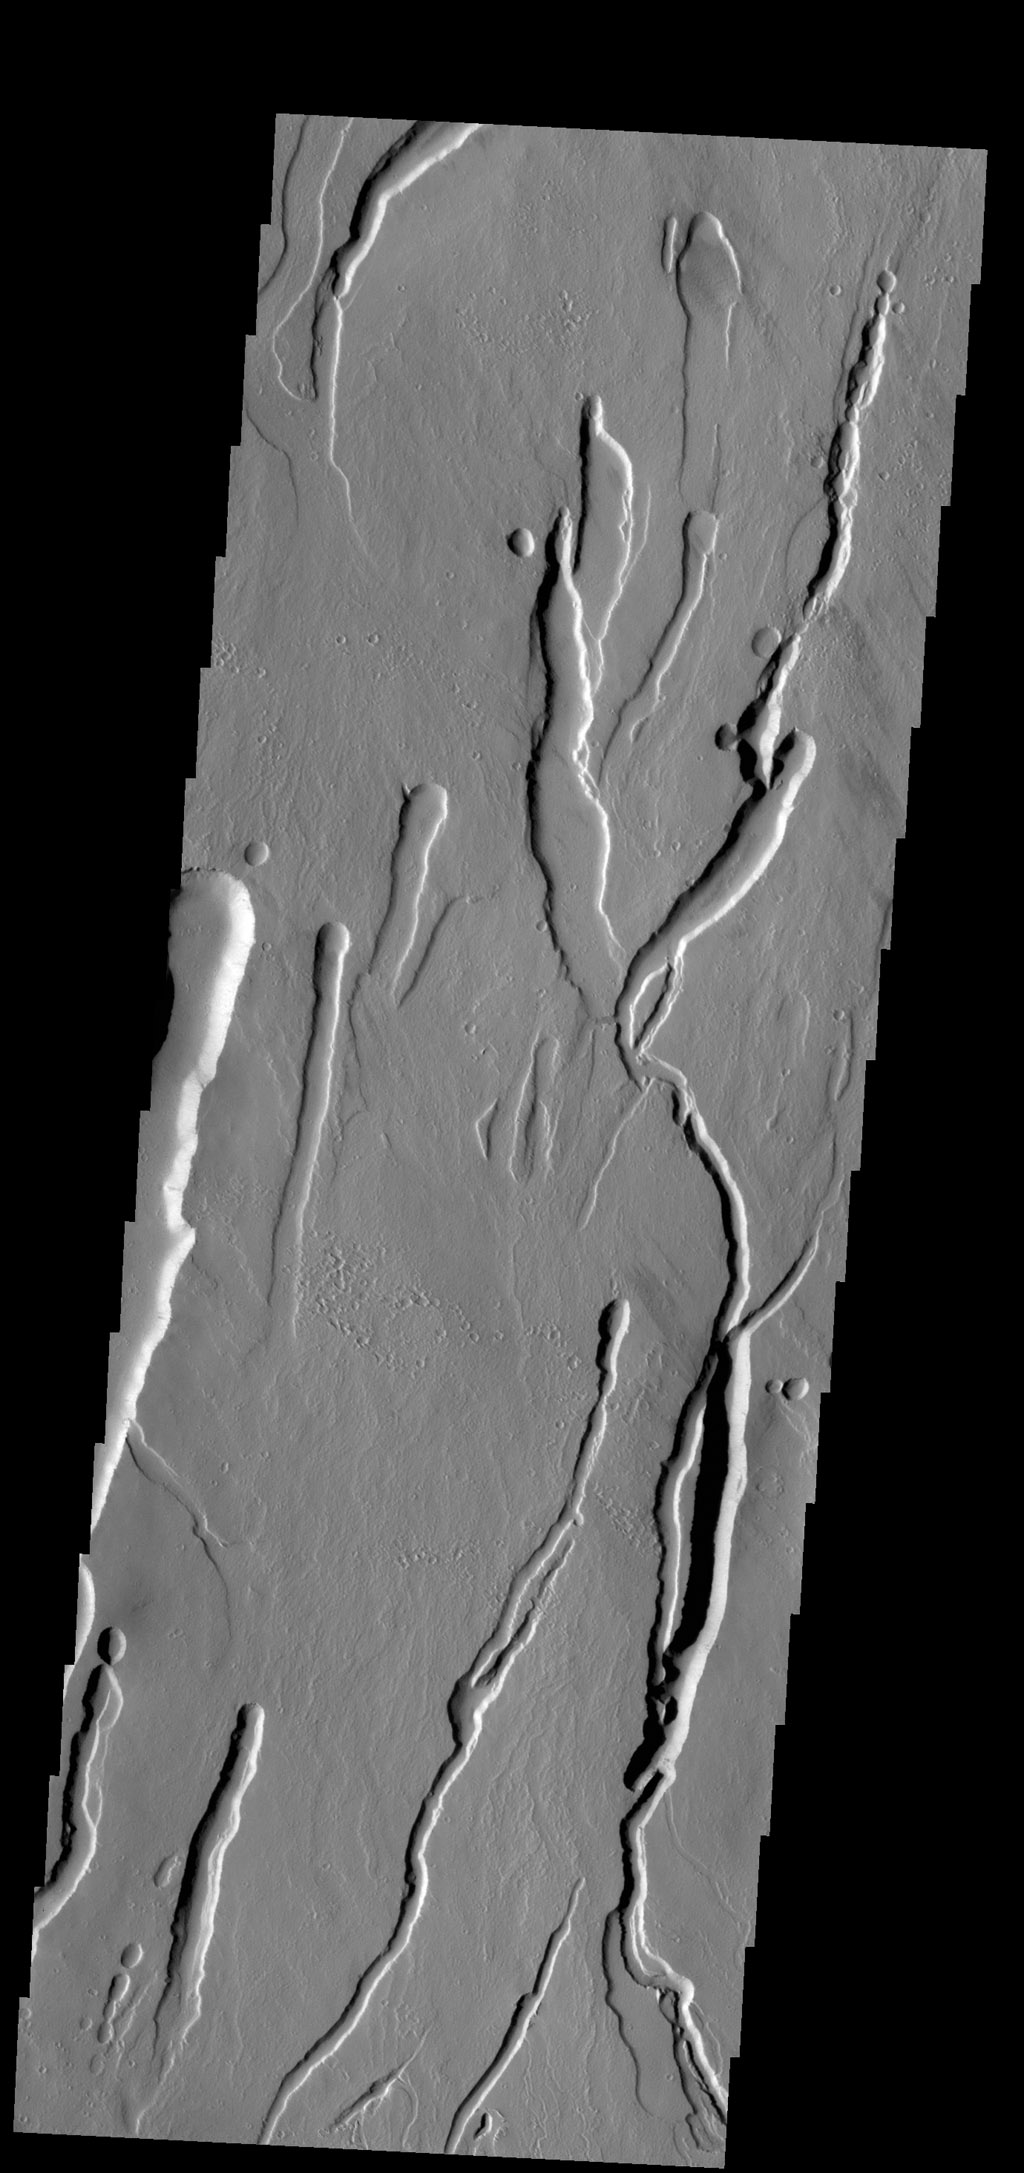 This image from NASA's 2001 Mars Odyssey spacecraf shows part of the southern flank of Ascraeus Mons. Large collapse features are common in this area.